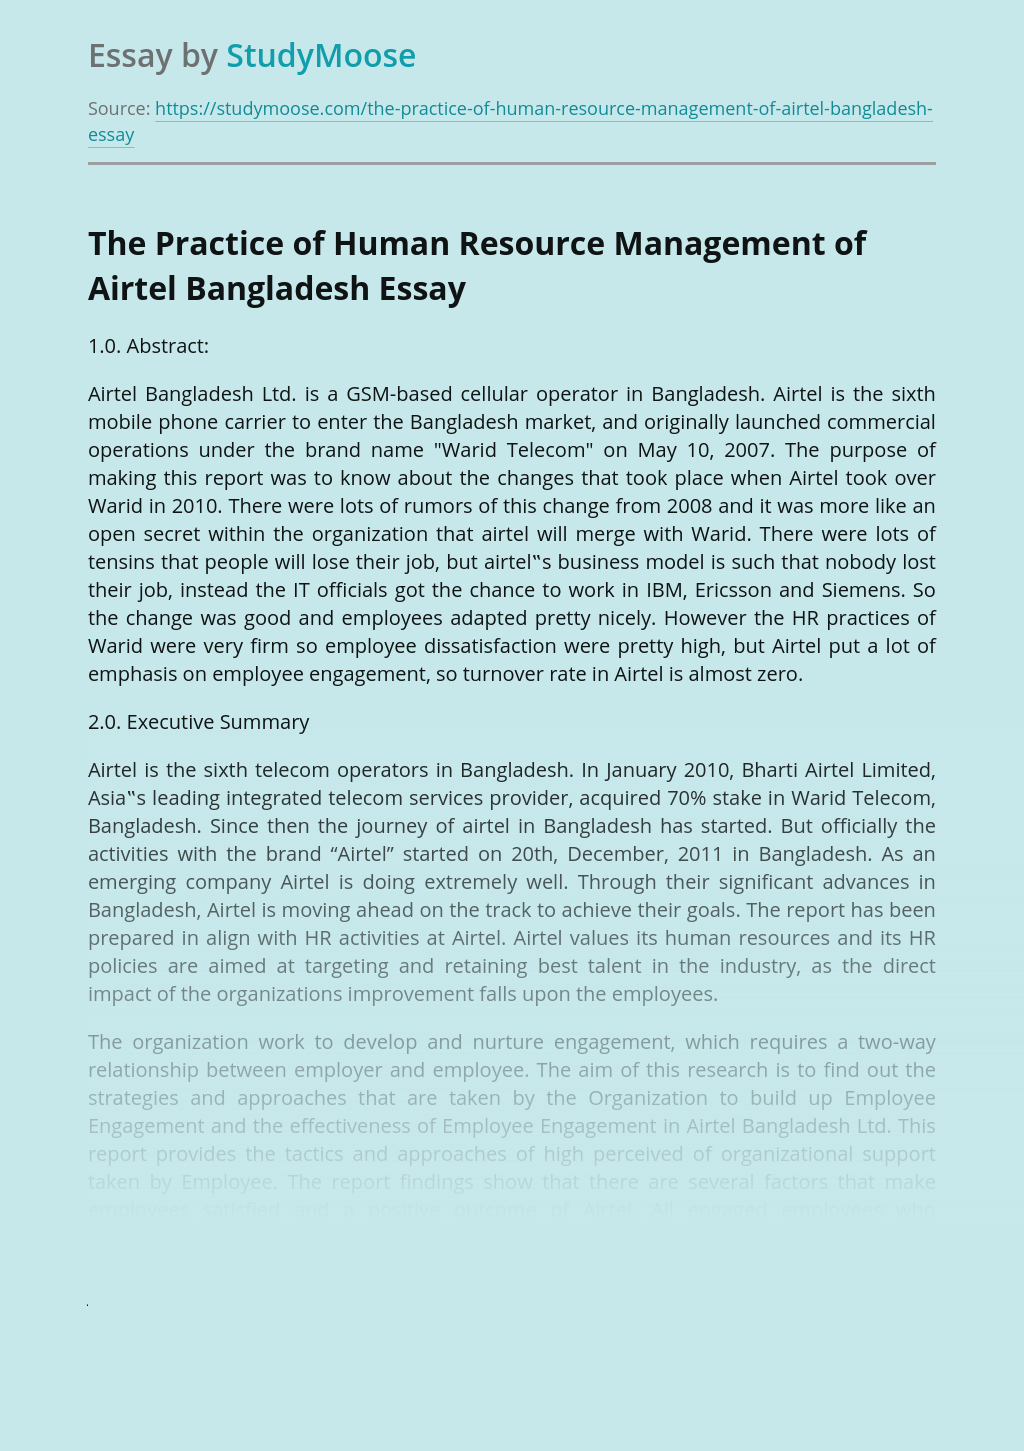 The Practice of Human Resource Management of Airtel Bangladesh